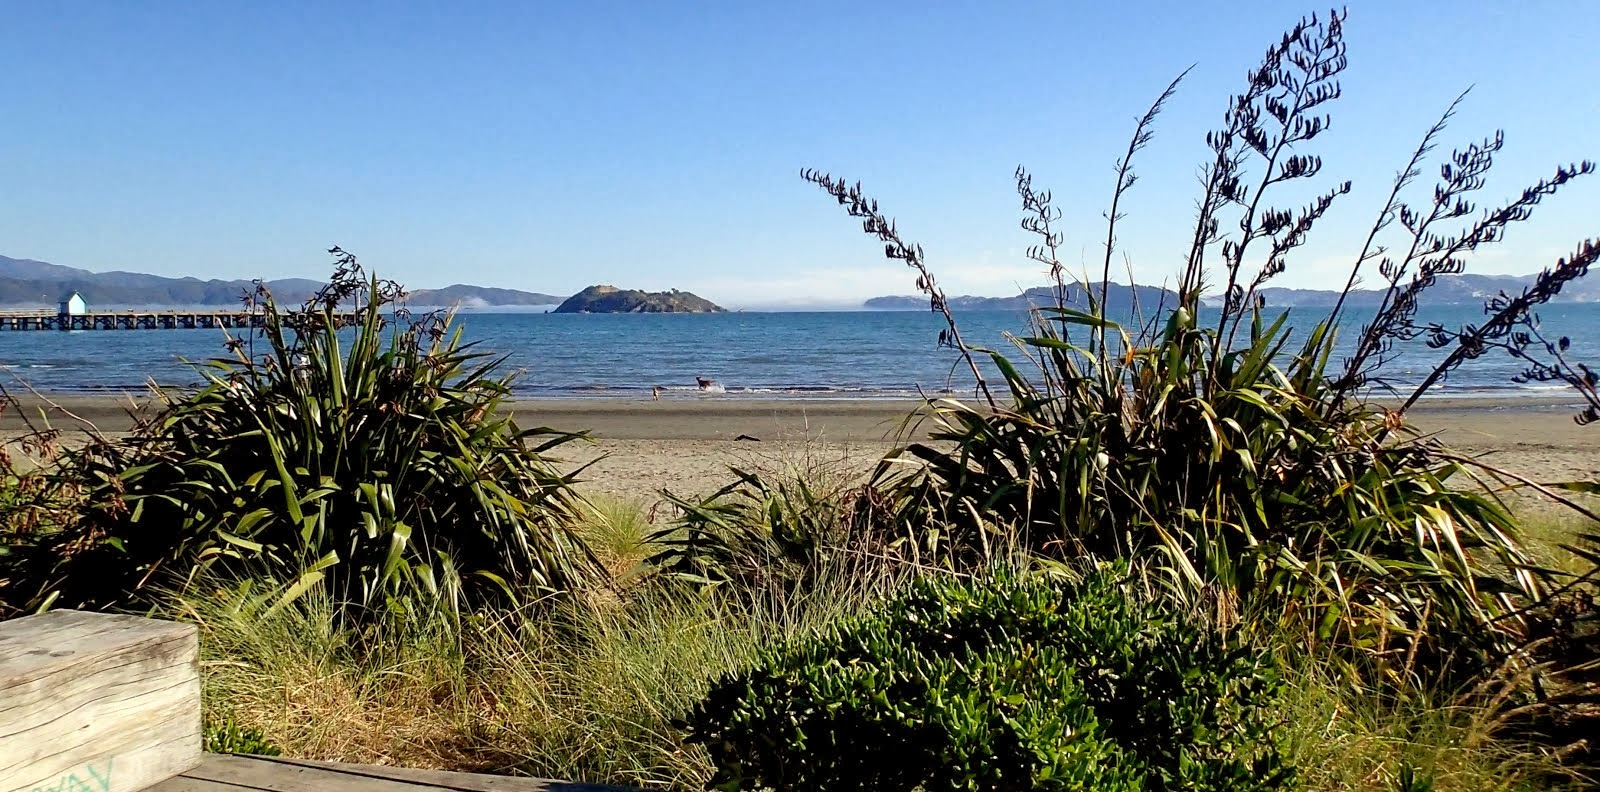 This evening on Petone Beach